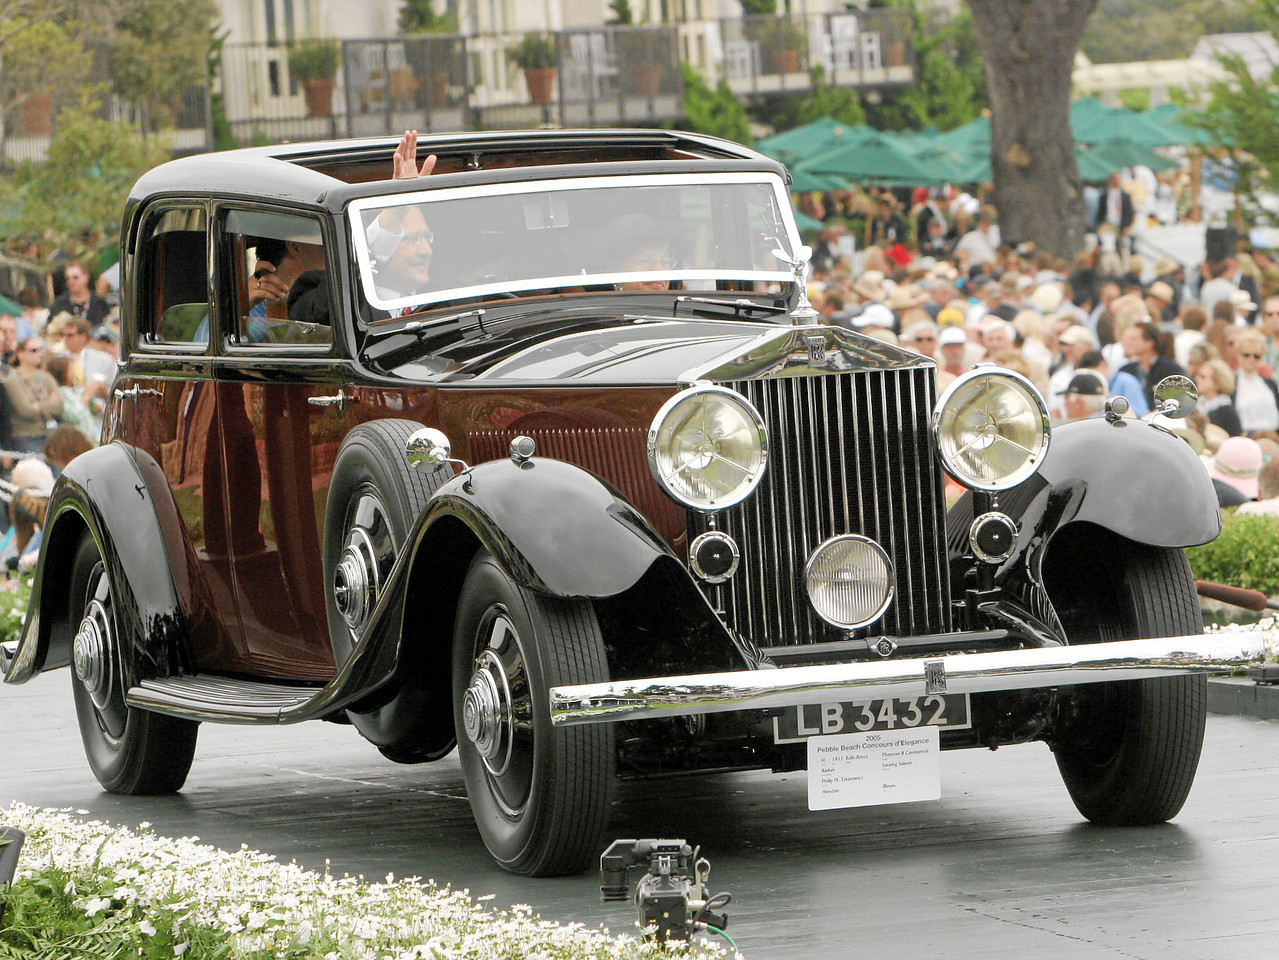 1933 Rolls-Royce Phantom II Continental Barker Touring Saloon owned by Philip M. Tatarowicz from Hinsdale, Illinois 3rd Class H (Rolls-Royce Prewar)